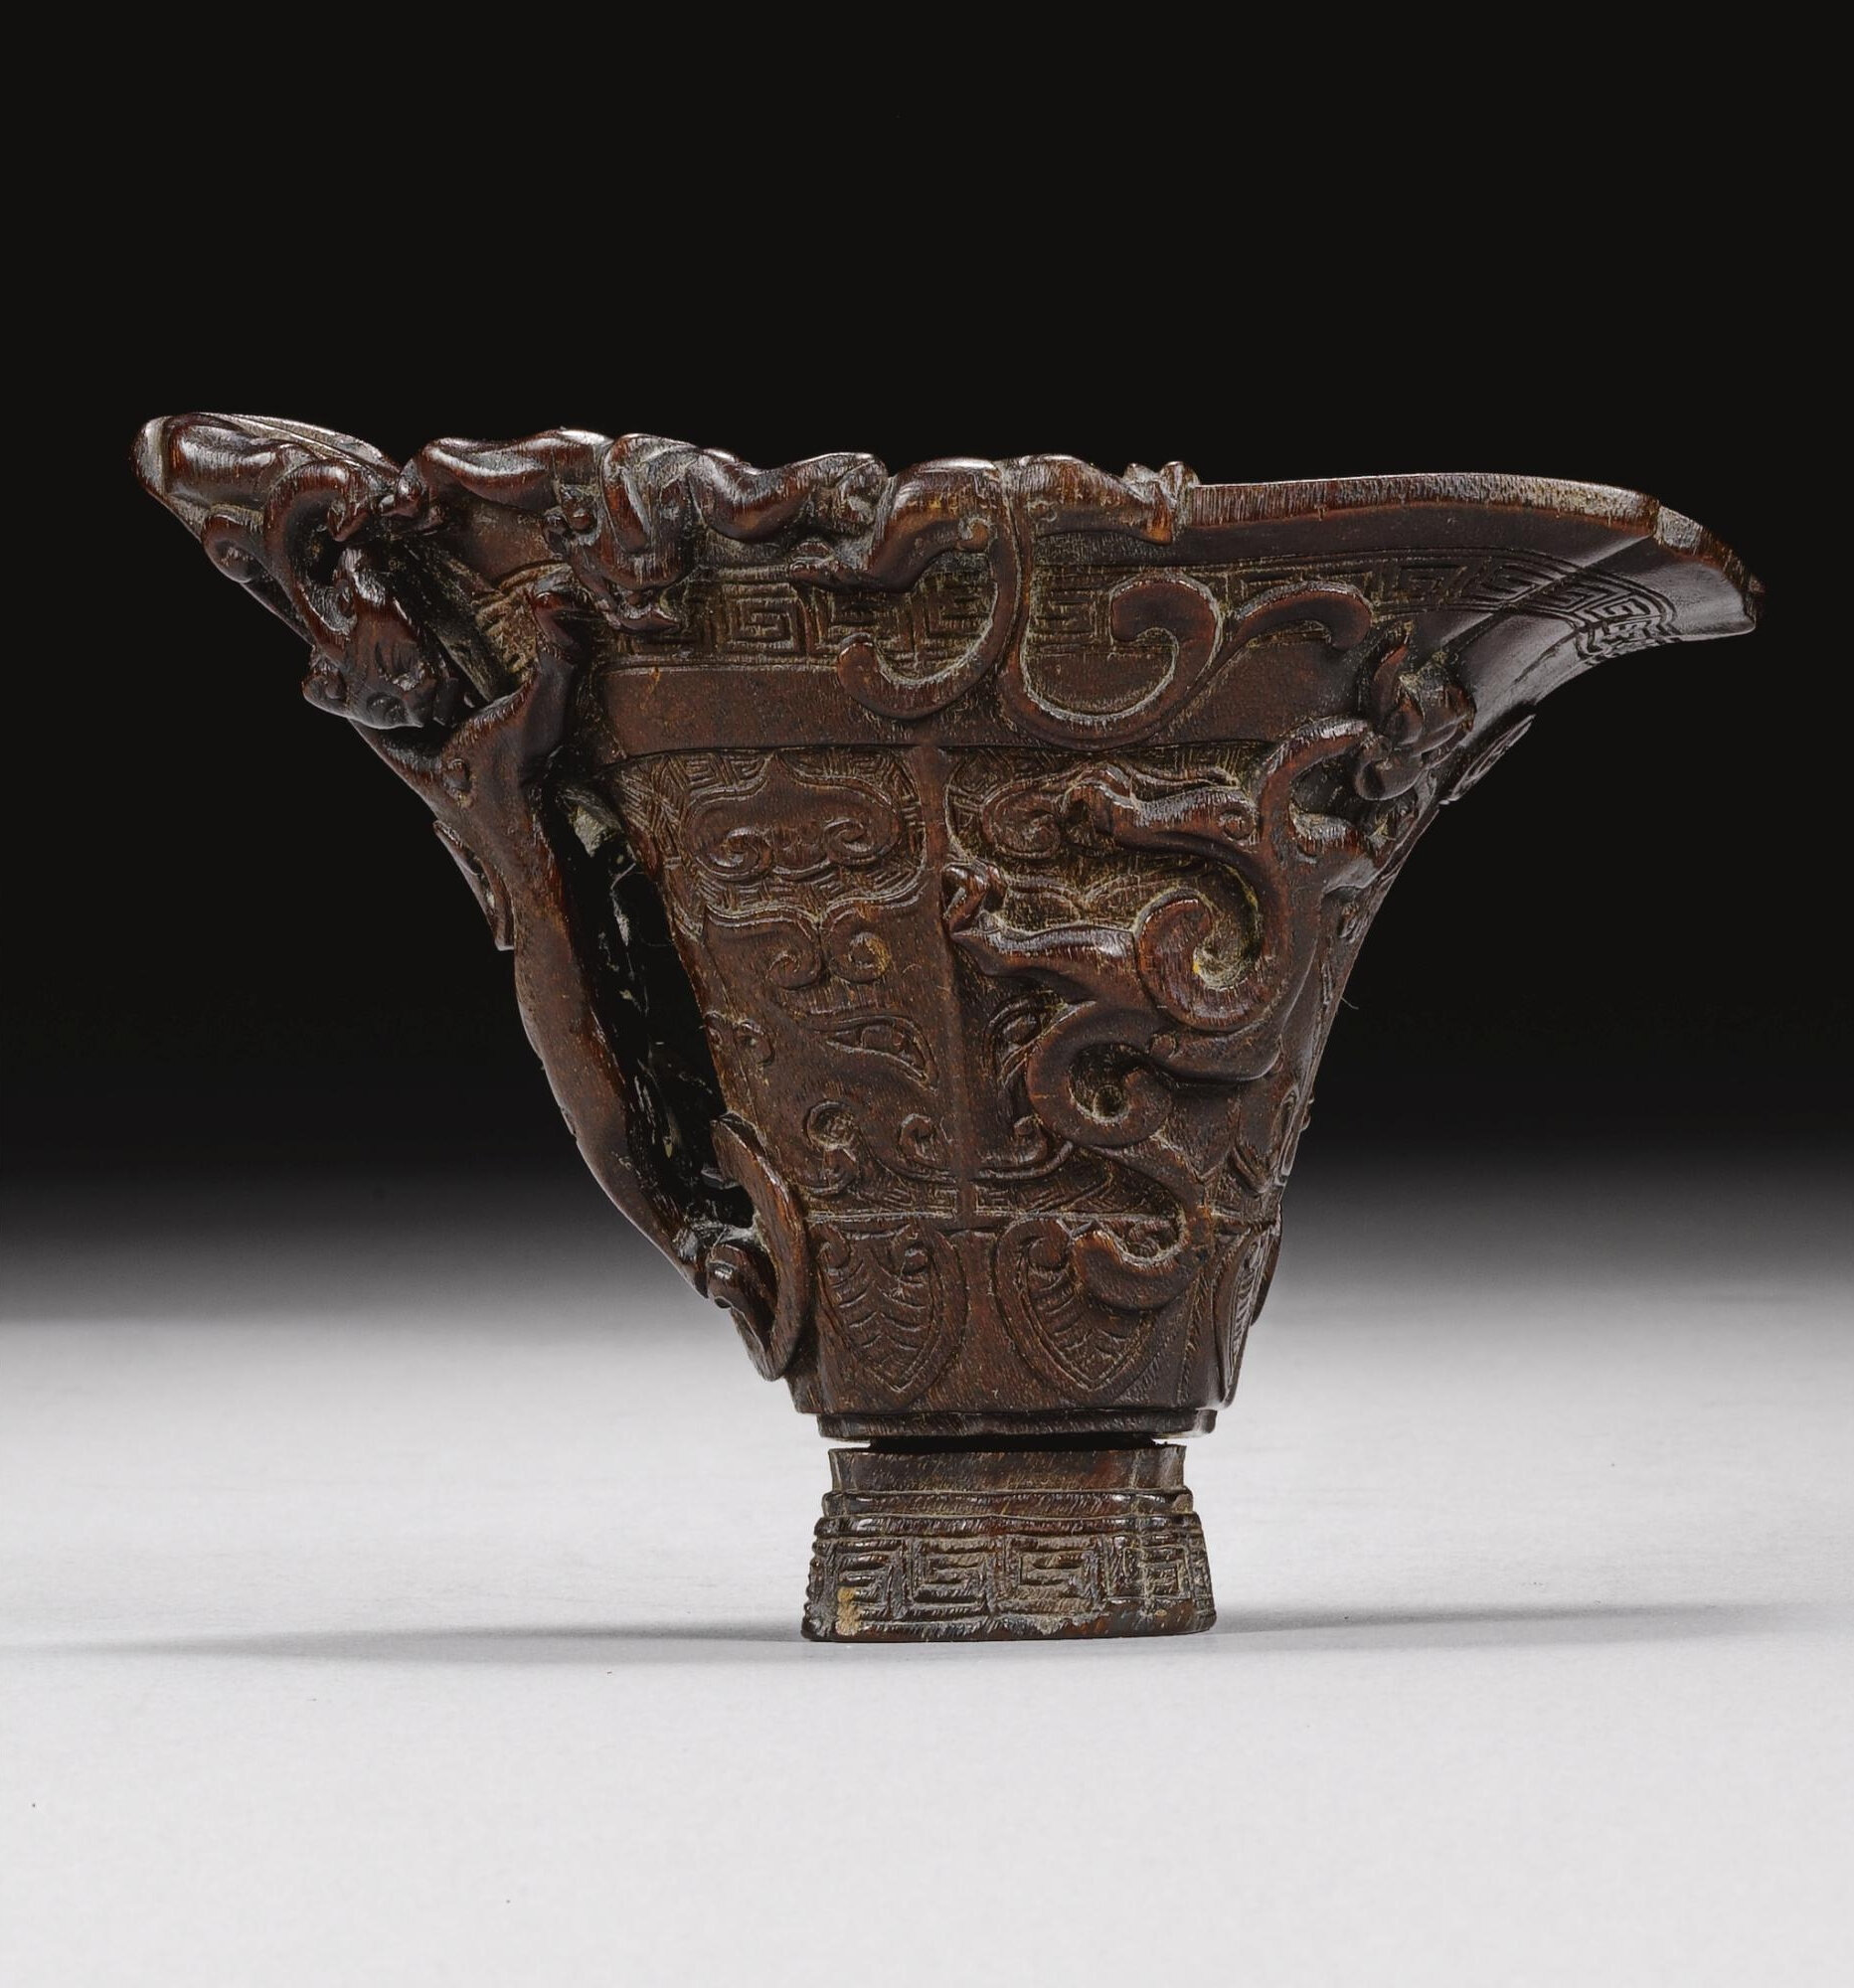 A rhino horn libation cup, 17th-18th century